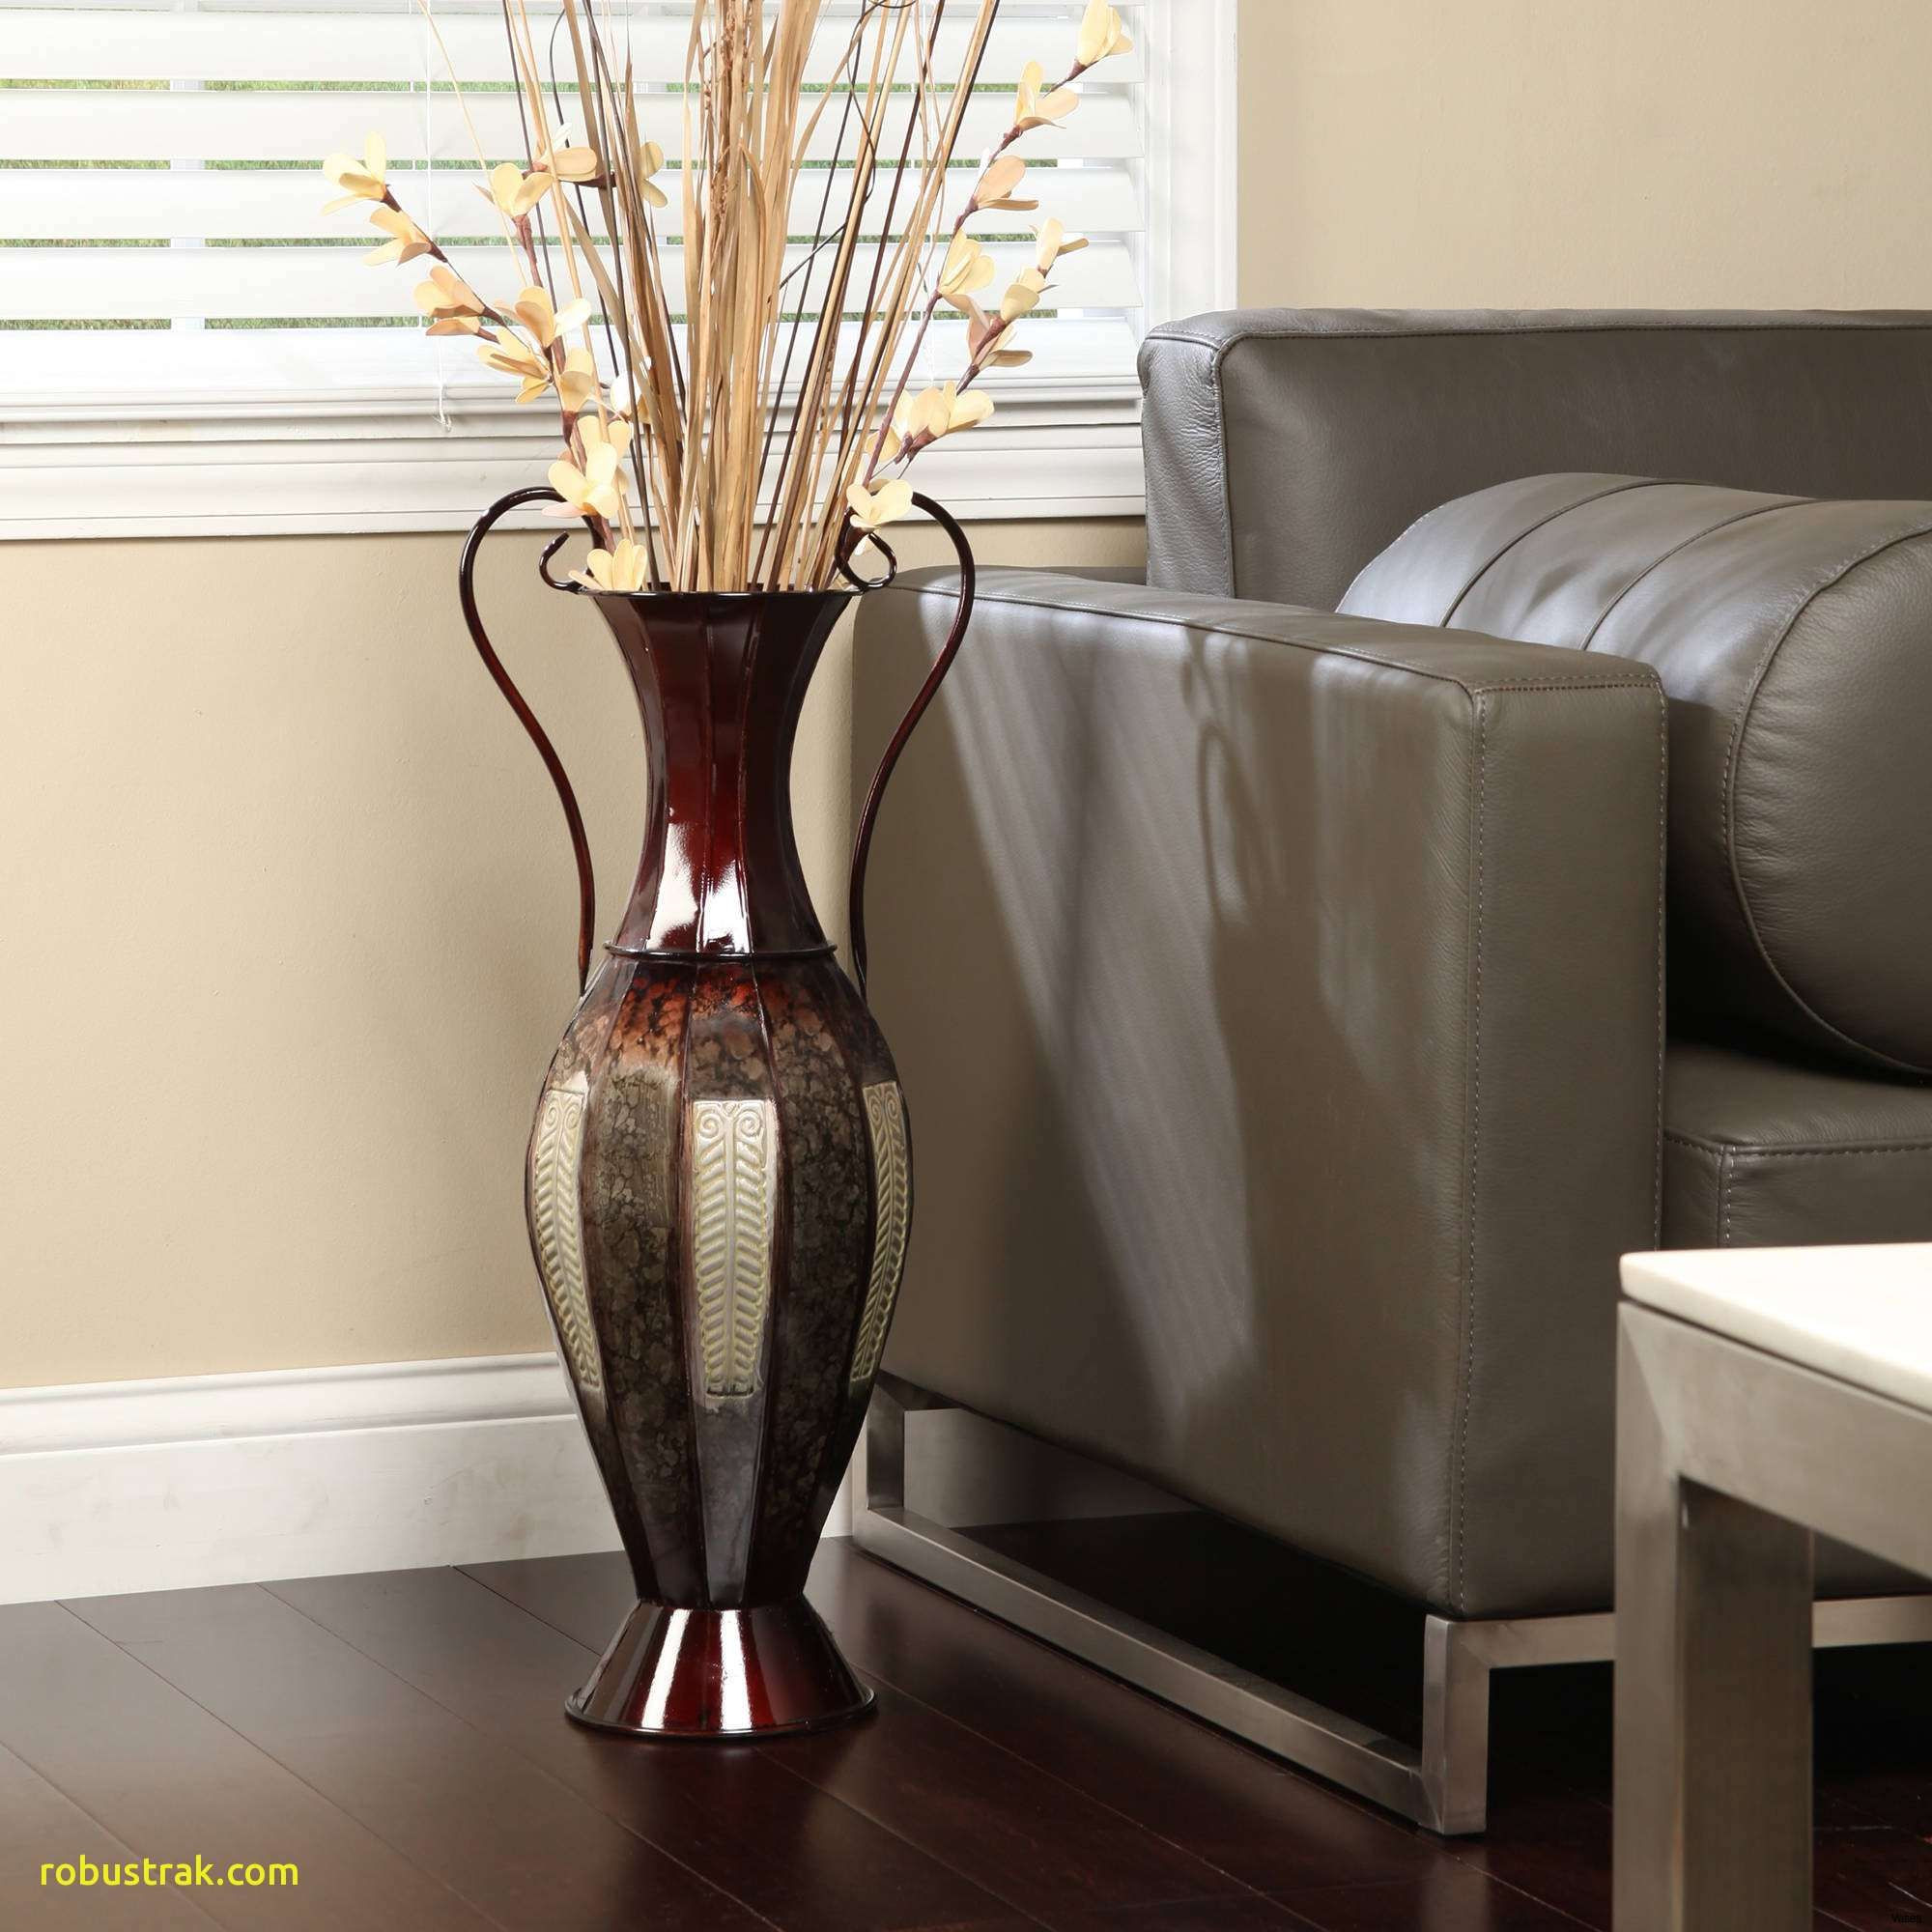 vase filler stones of 27 fall vase fillers the weekly world regarding new floor vase with branches